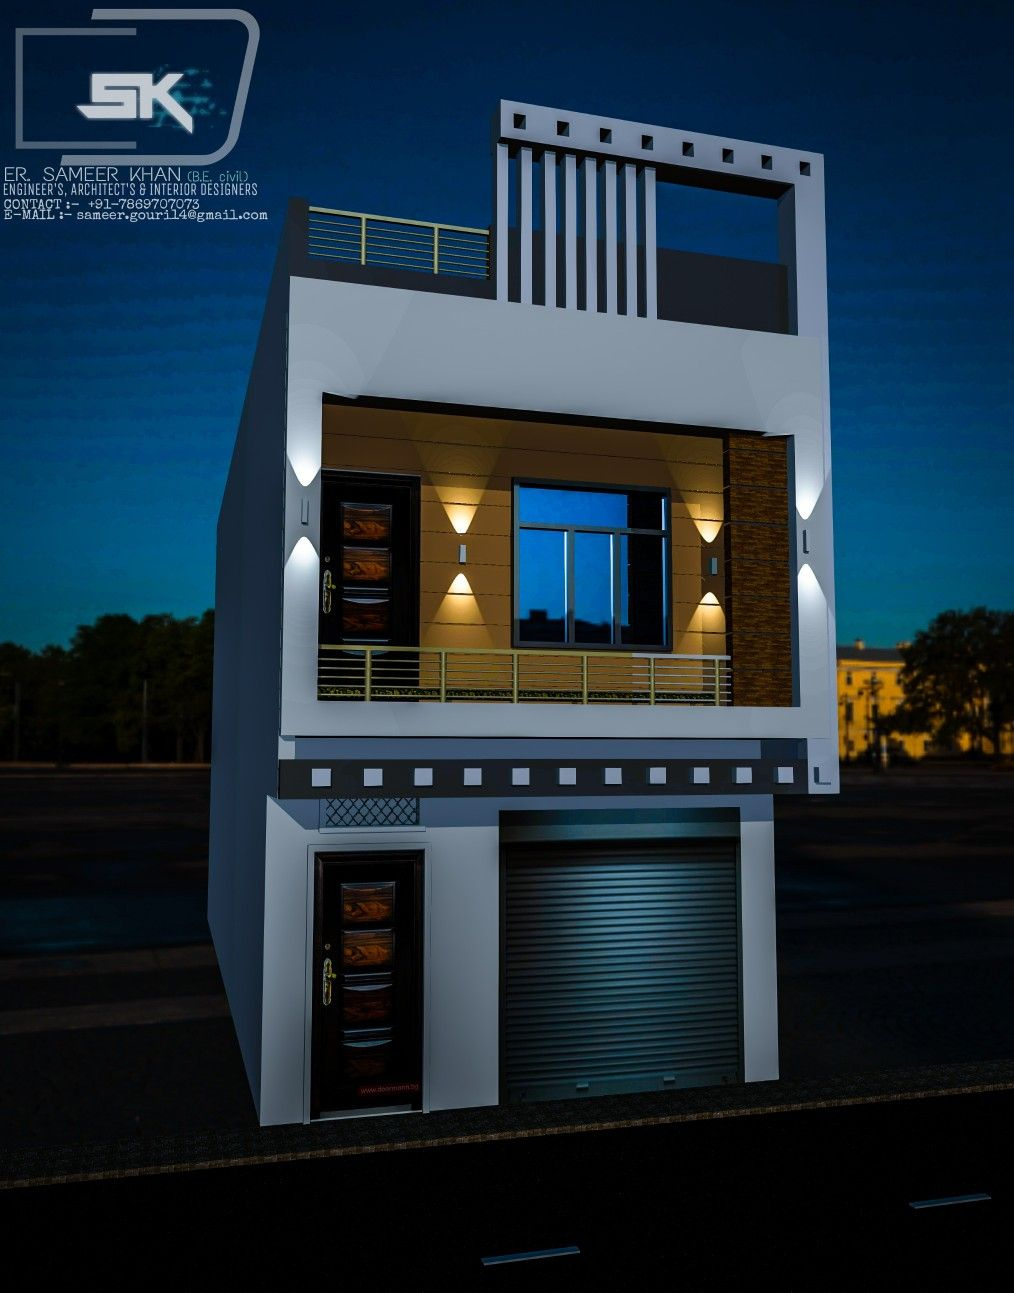 House Front Design House Design Front Elevation Designs: Introducing Modern House Exterior Elevation With Shop. Indian House In 15 Feet Front